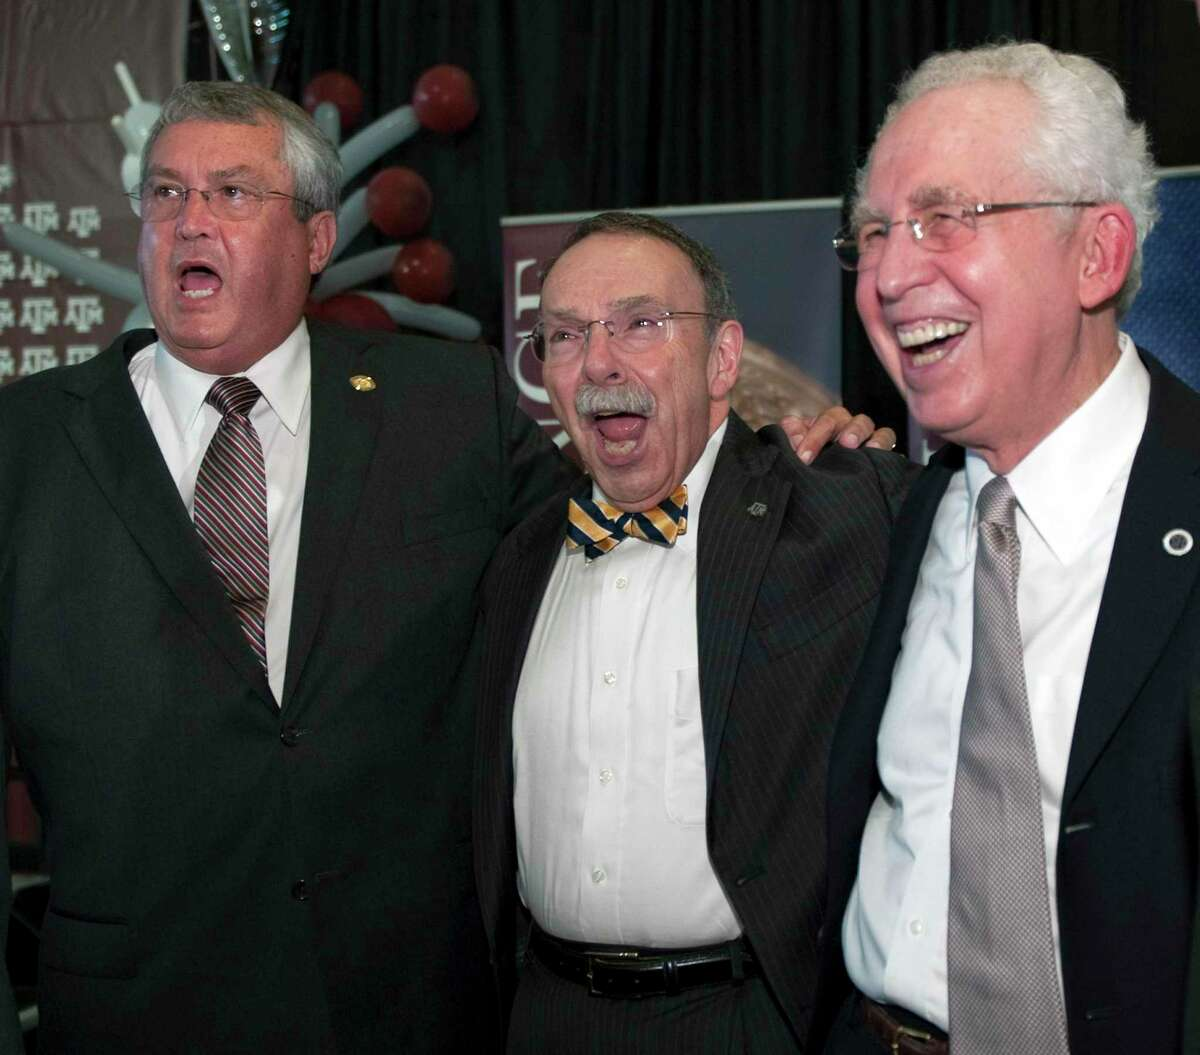 Texas A&M athletic Bill Byrne, left, and school president R. Bowen Loftin, center, celebrate the Aggies' addition to the Southeastern Conference with commissioner Mike Slive in 2011.